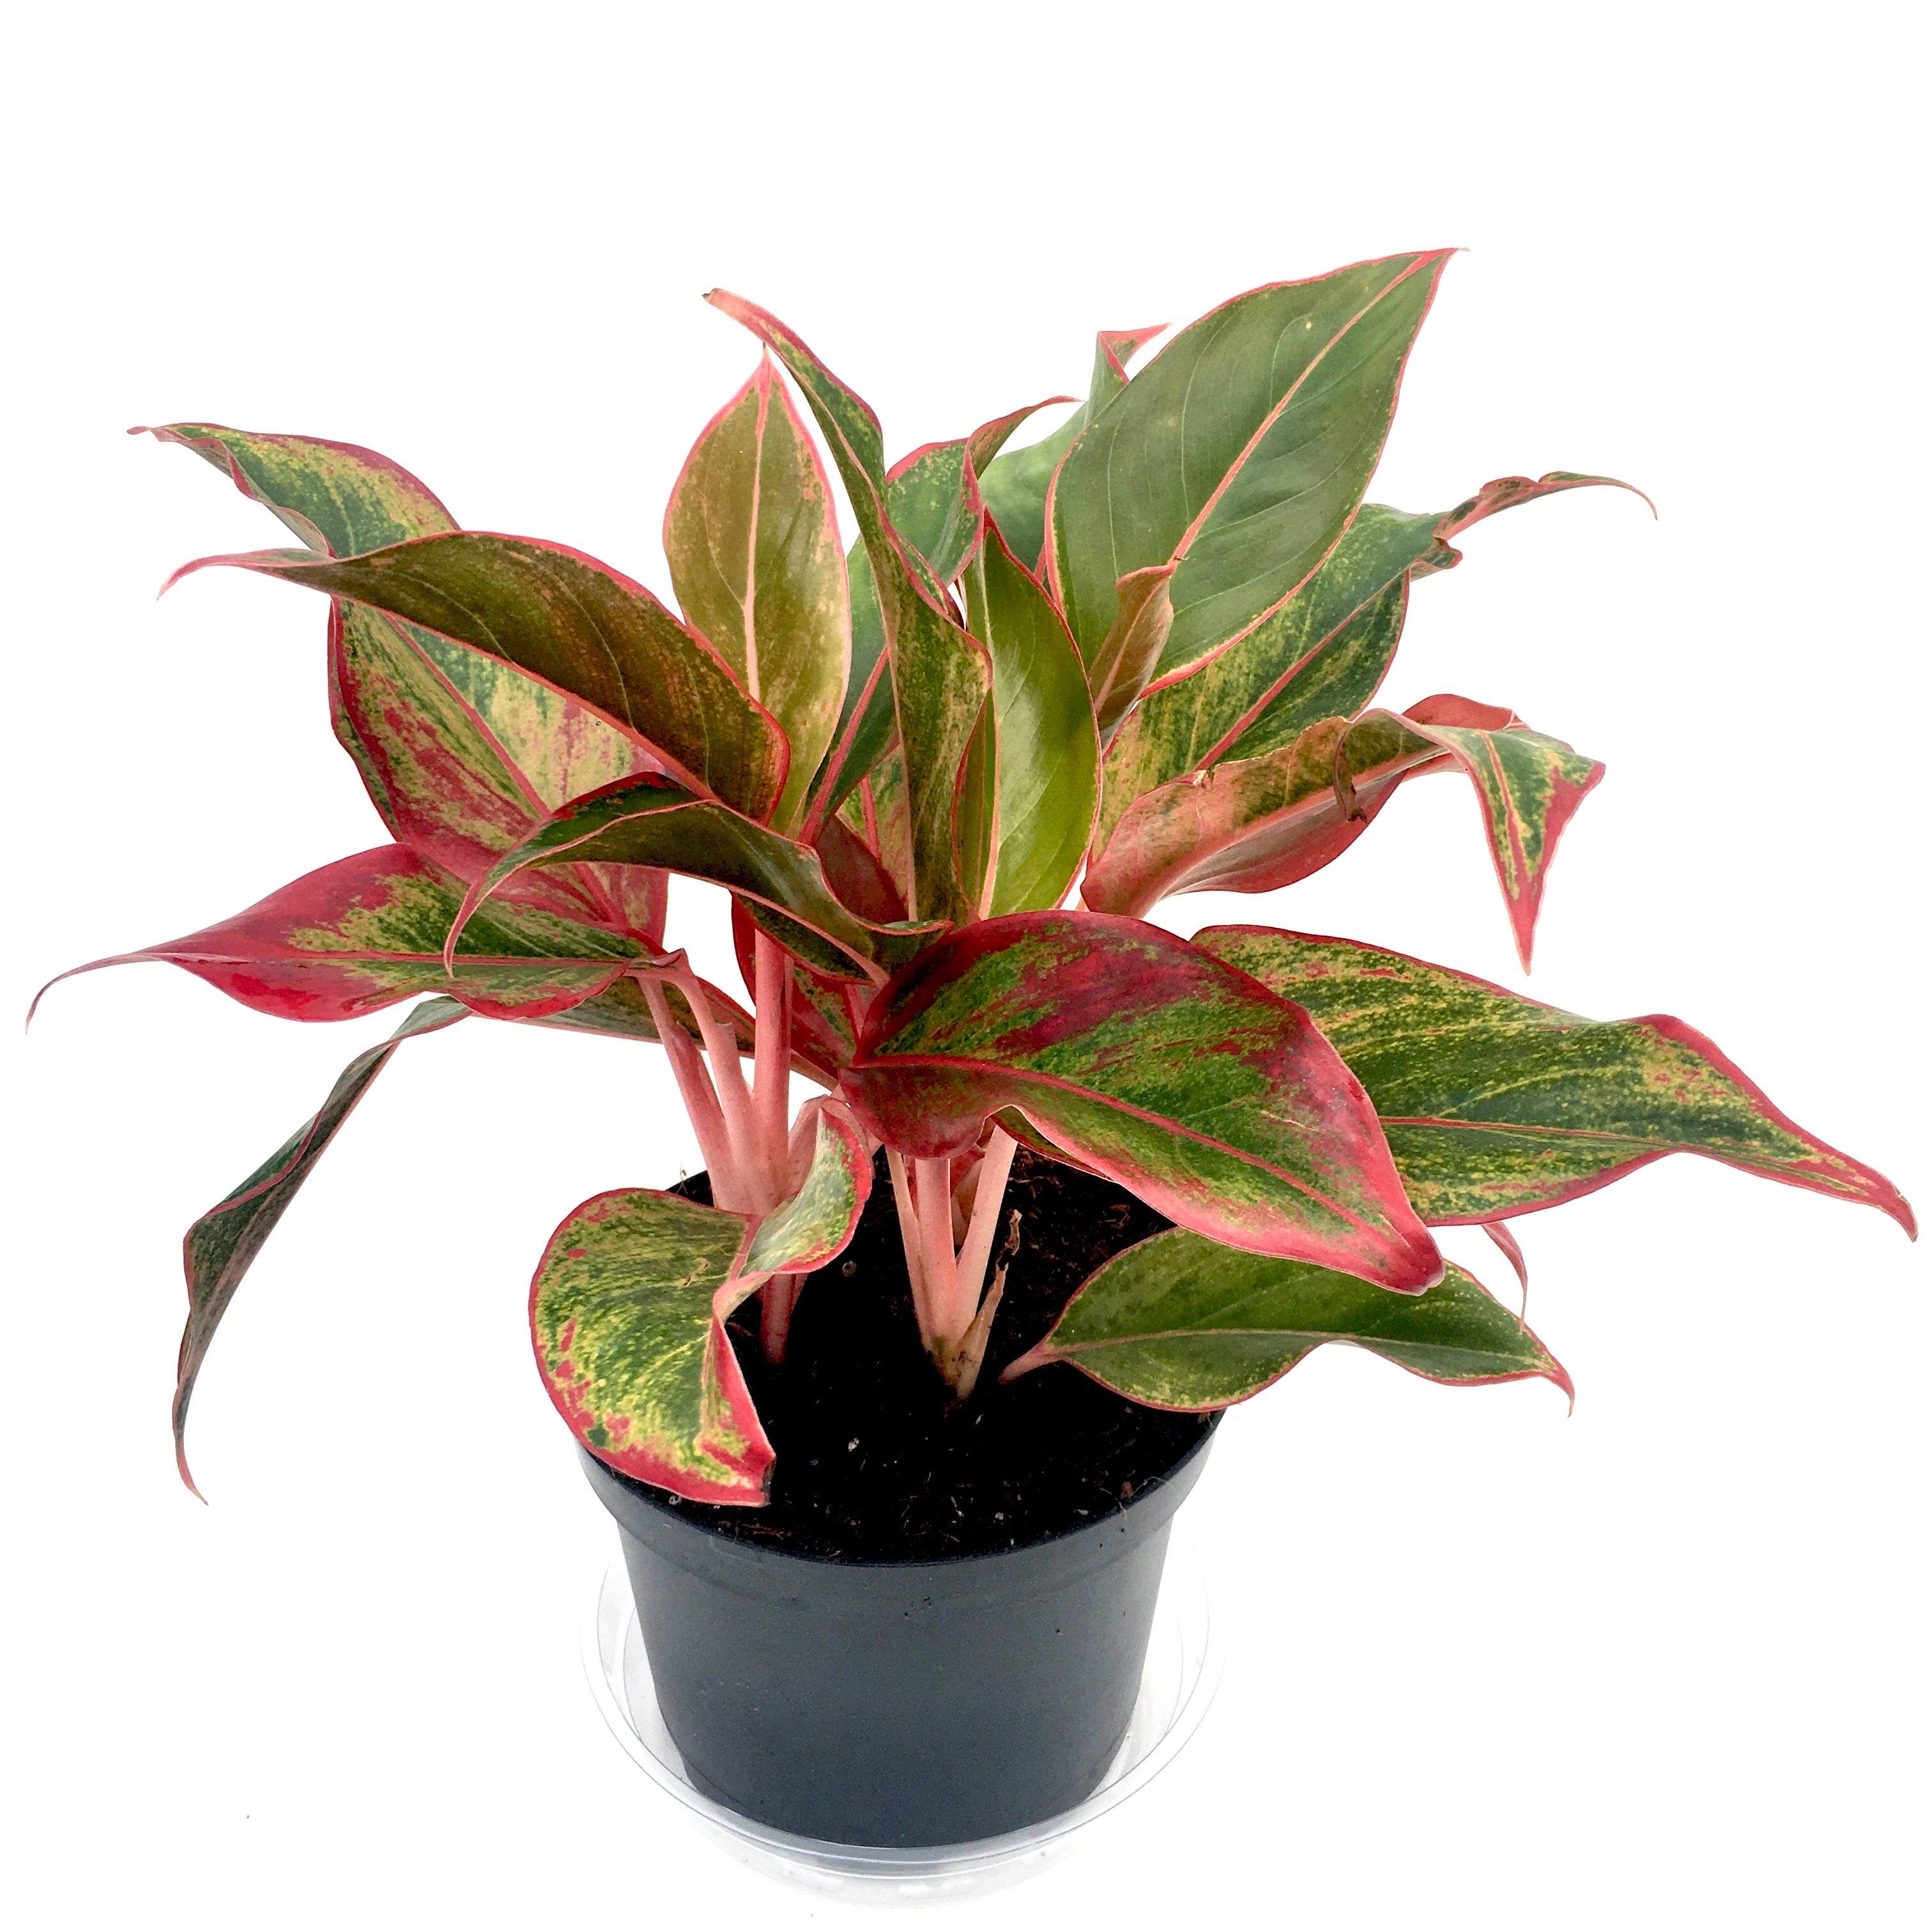 Aglaonema 'Siam' (Chinese evergreen)